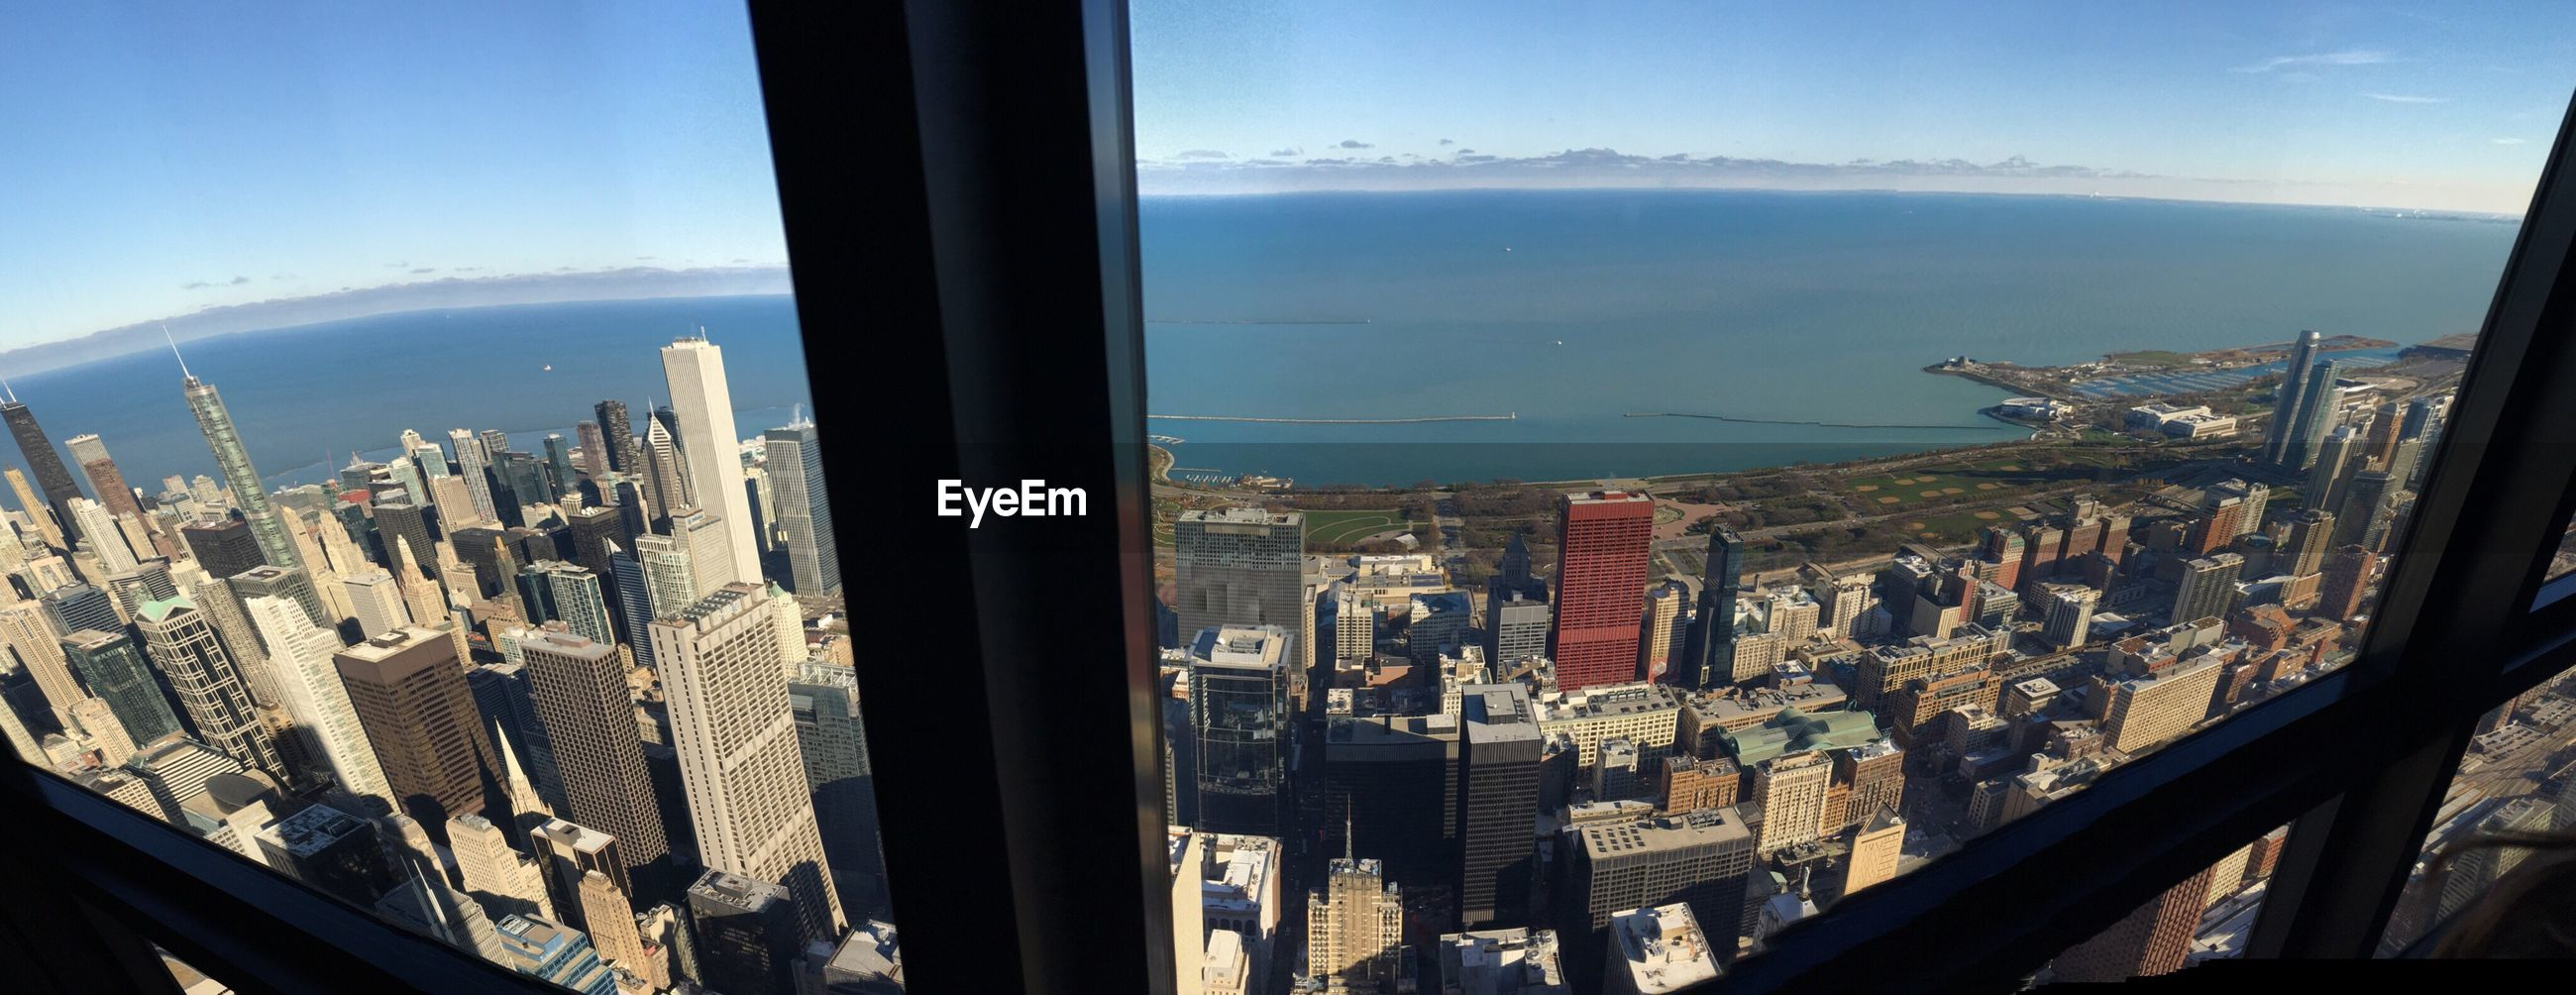 Sea and buildings seen through glass window